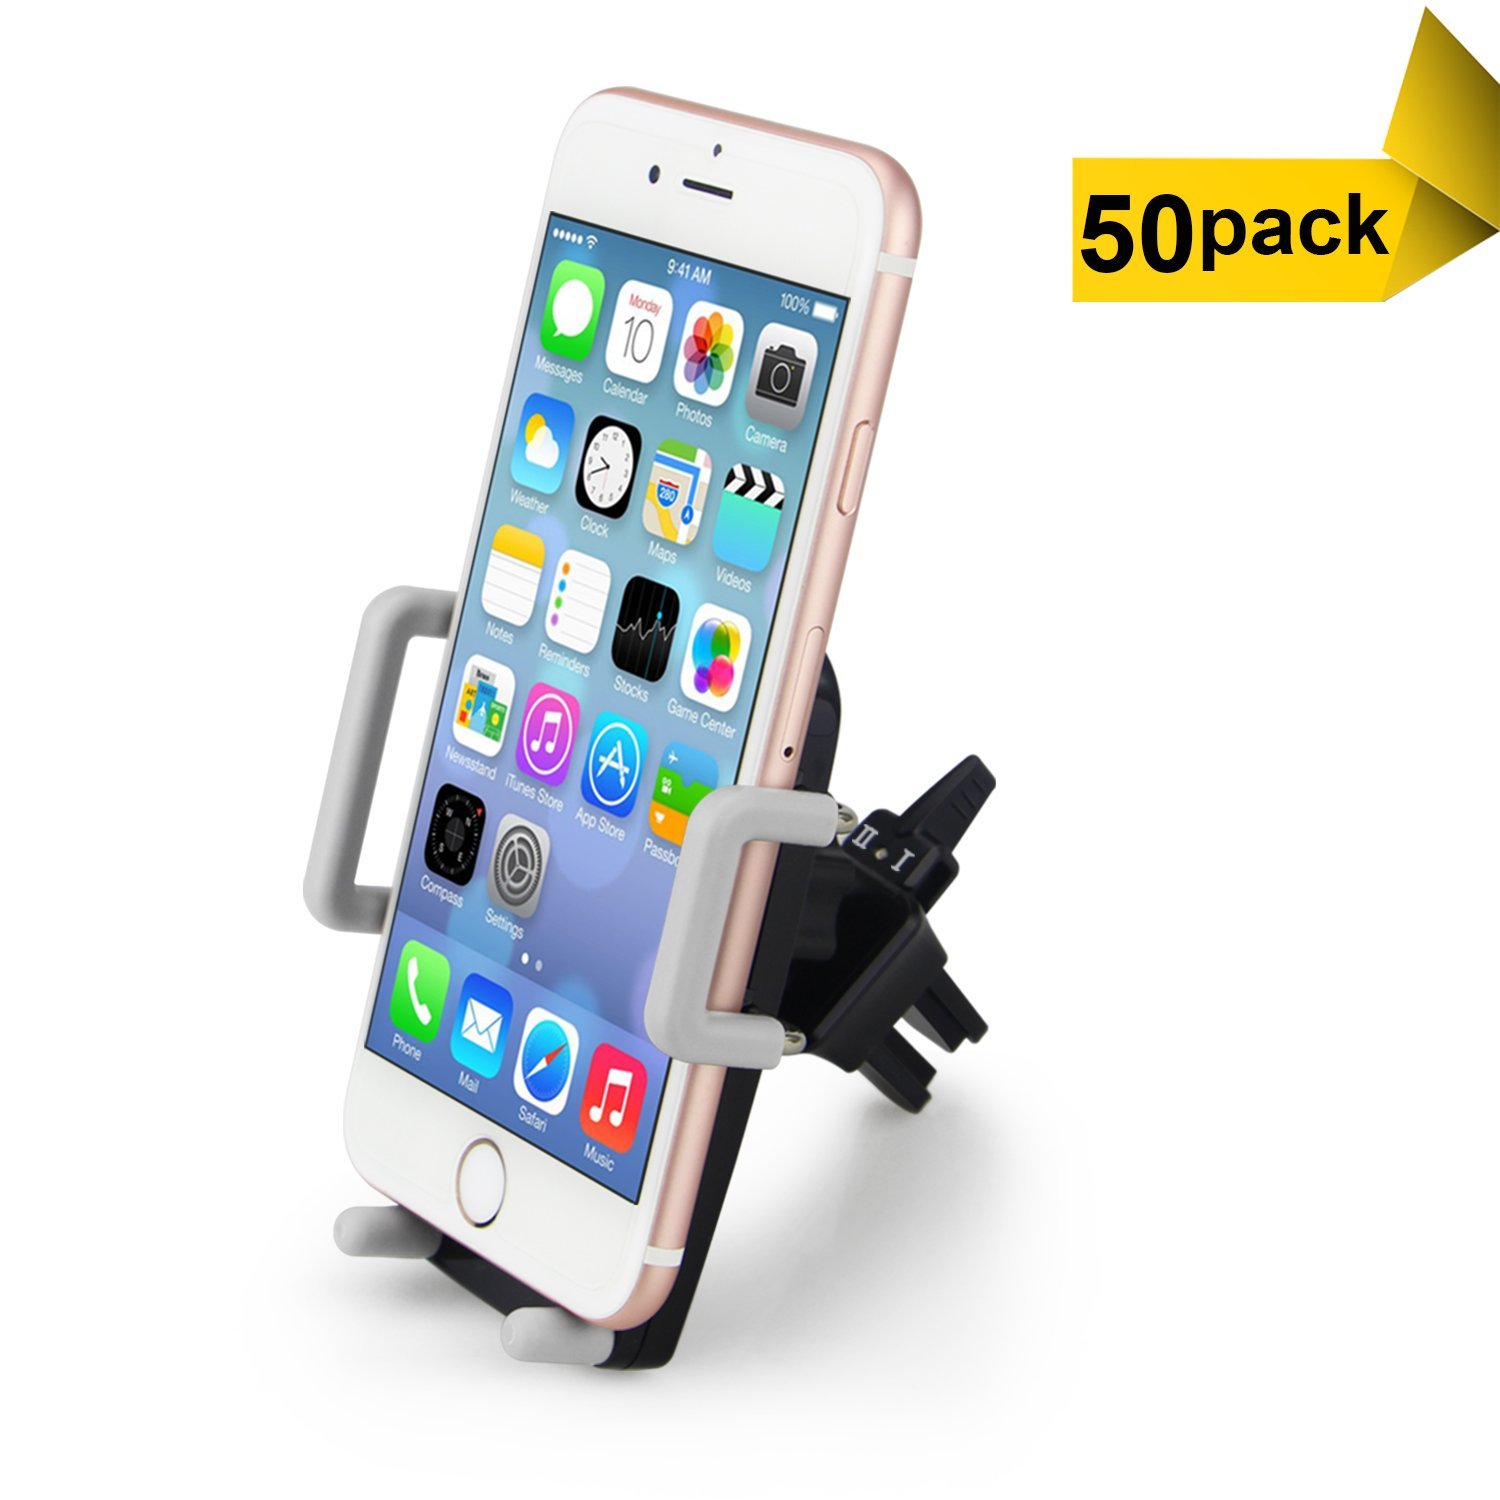 Car Phone Holder, ilikable 50 Pack Universal Air Vent Car Phone Mount Cradle with 360 Degree Rotation for iPhone 7 6 SE 5C 5S Android Samsung Galaxy LG HTC Smartphone GPS and More (Black)